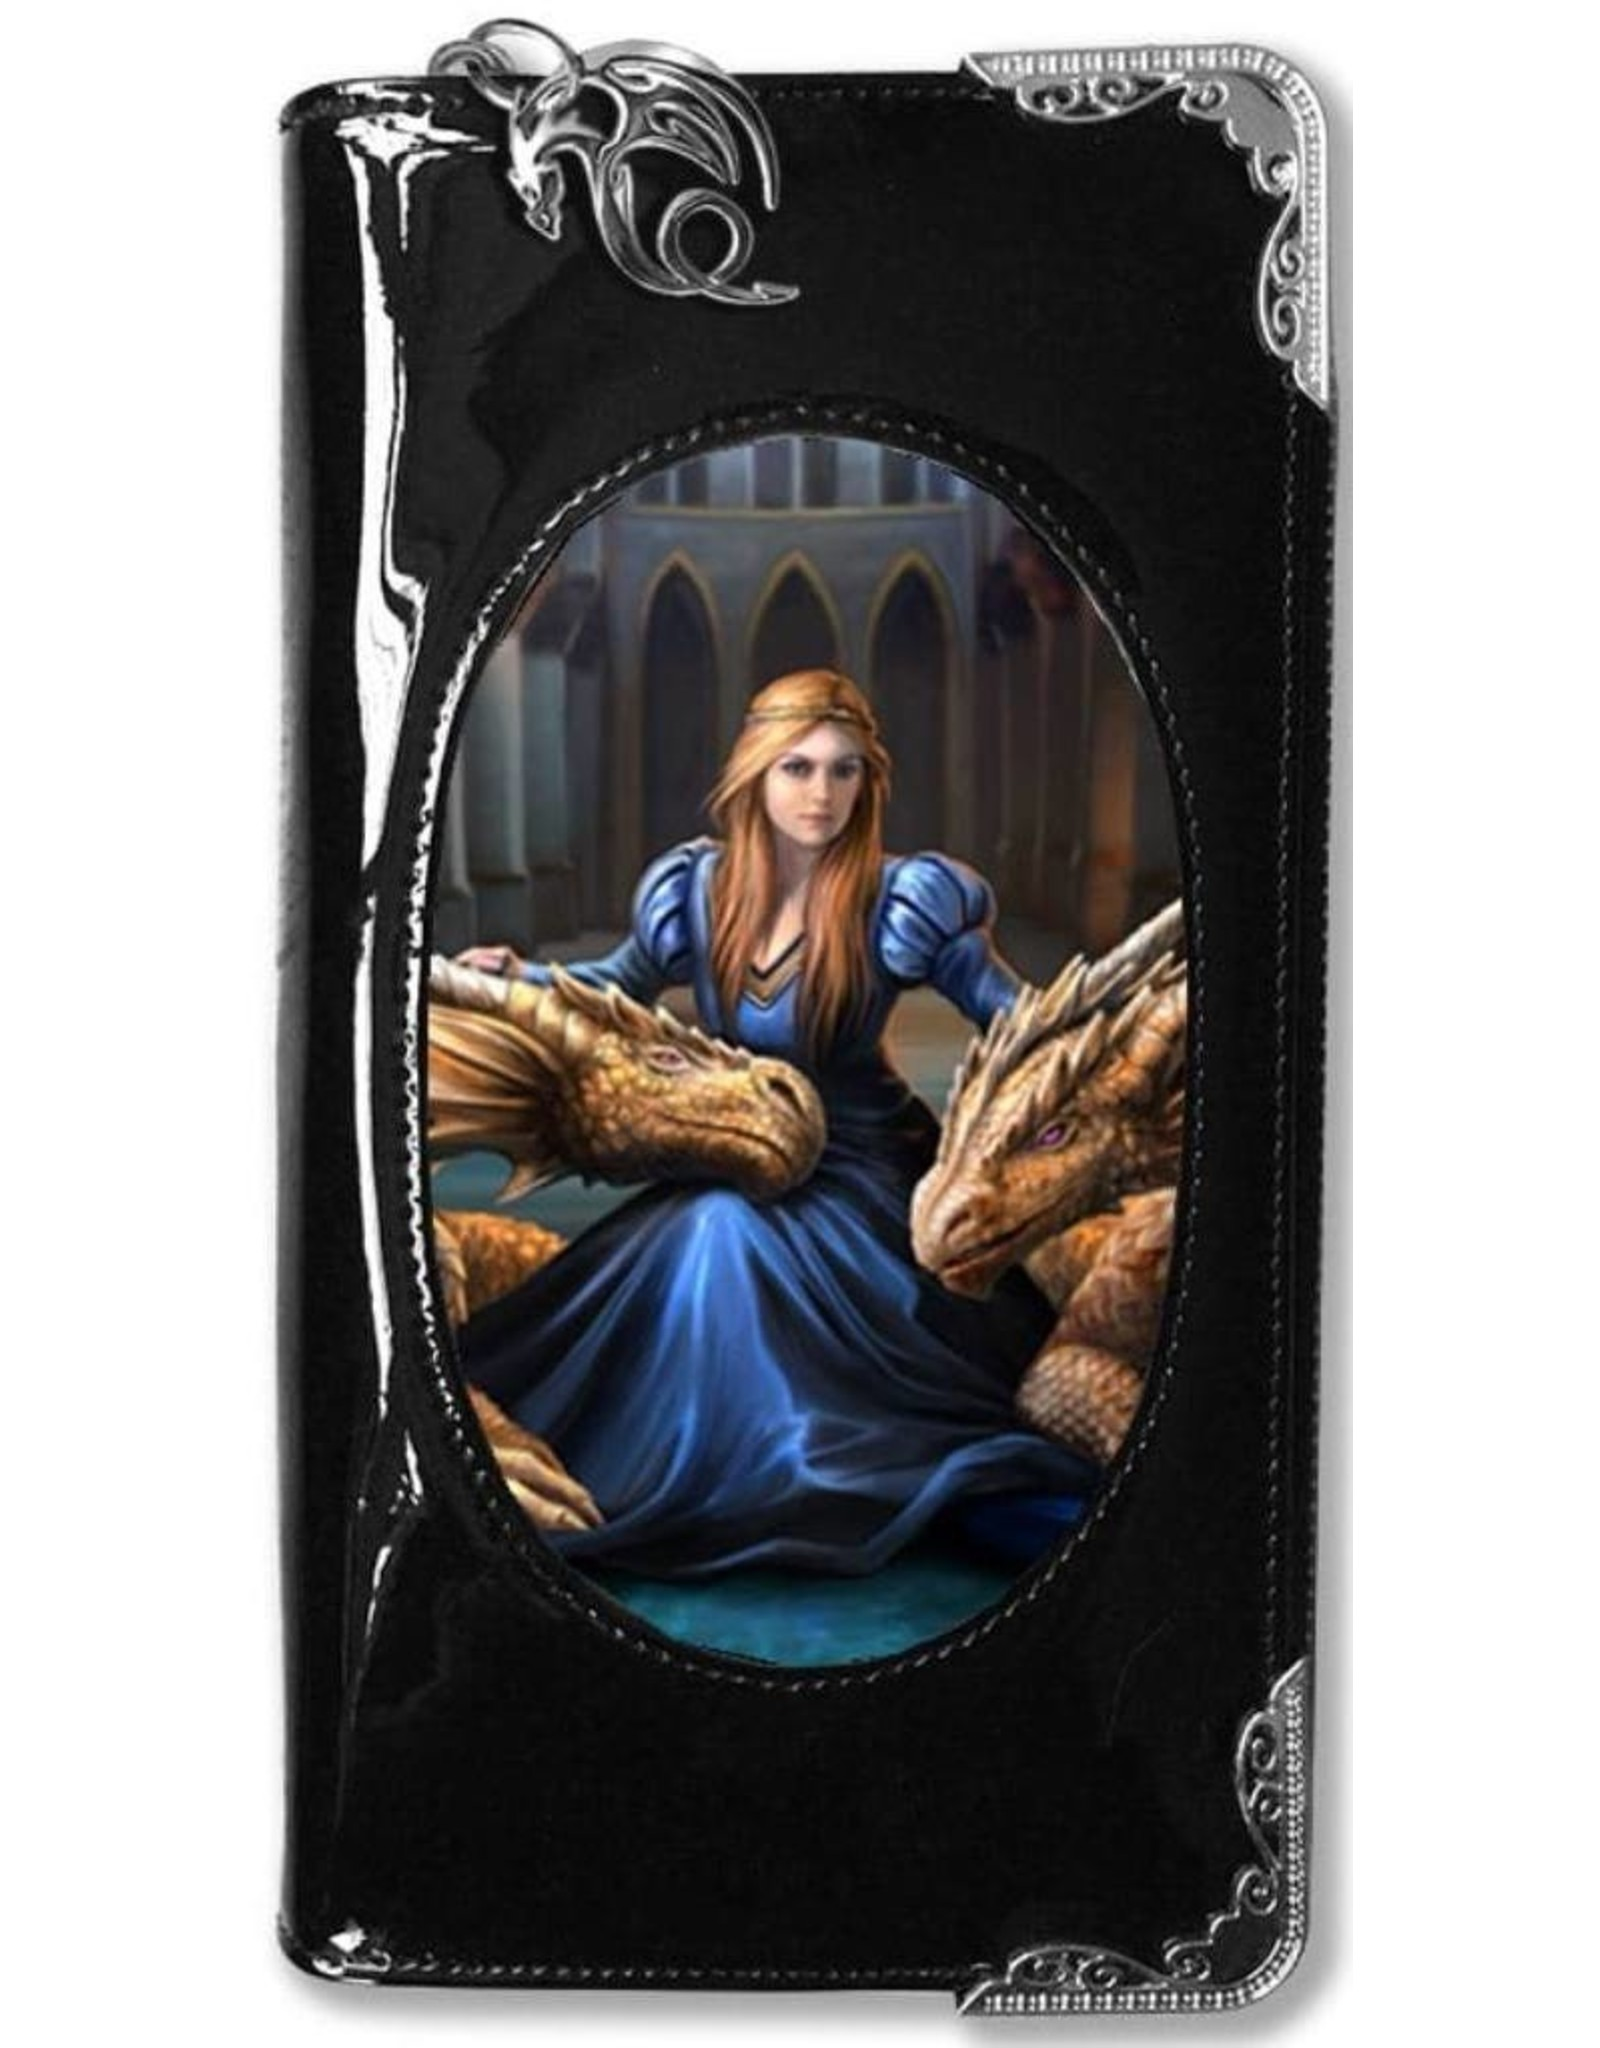 Anne Stokes Fantasy bags and wallets - Anne Stokes 3D lenticular purse Fierce Loyalty